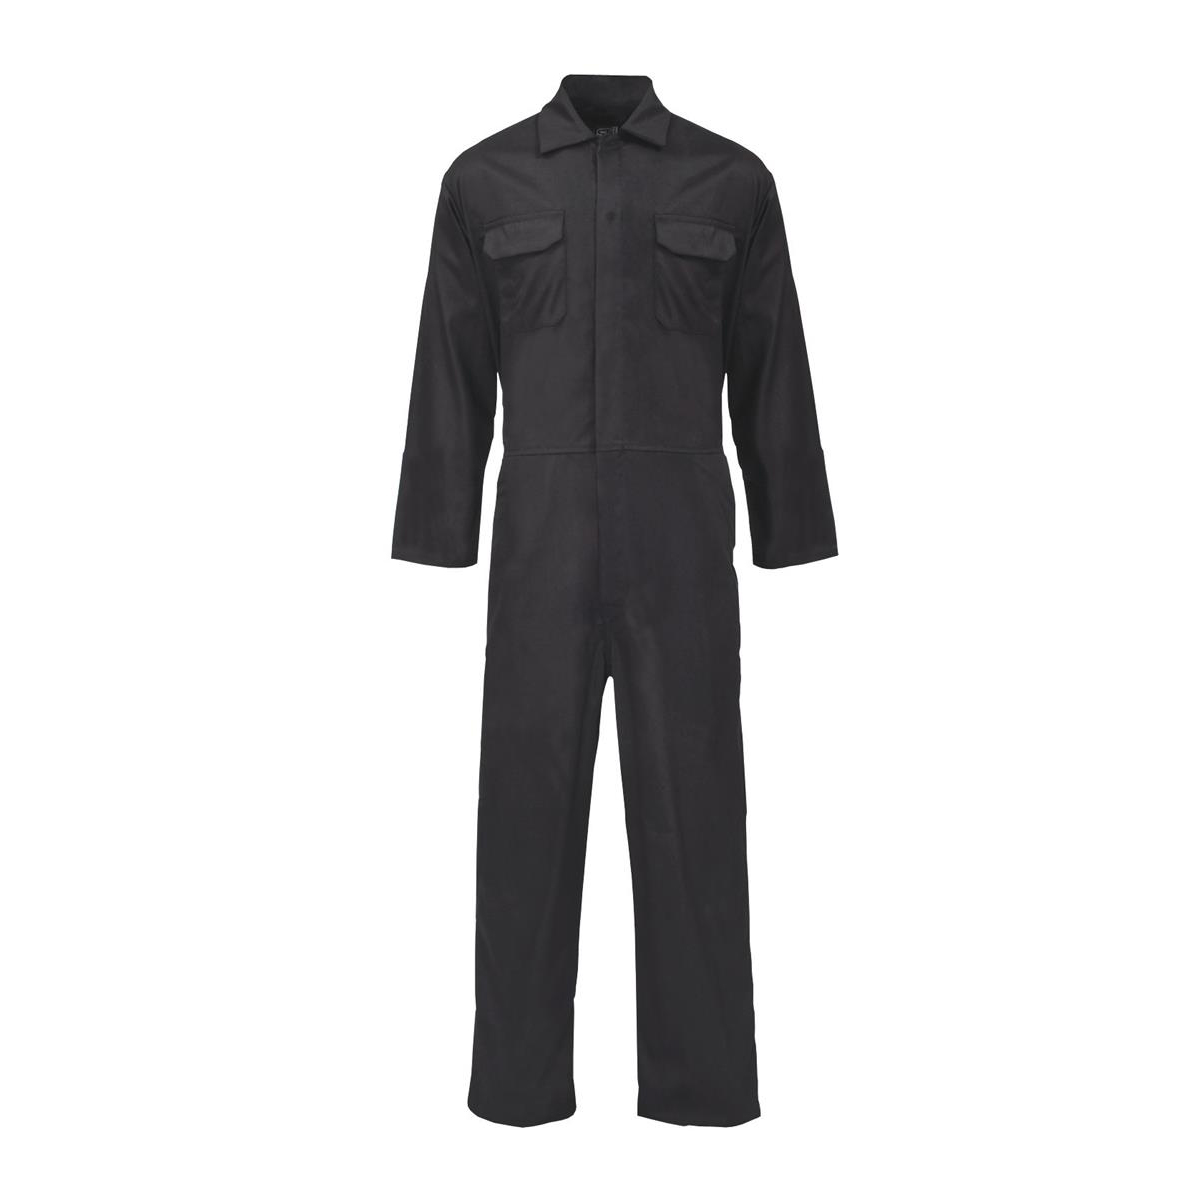 Coveralls / Overalls Coverall Basic with Popper Front Opening Polycotton Large Black Ref RPCBSBL44 *Approx 3 Day Leadtime*